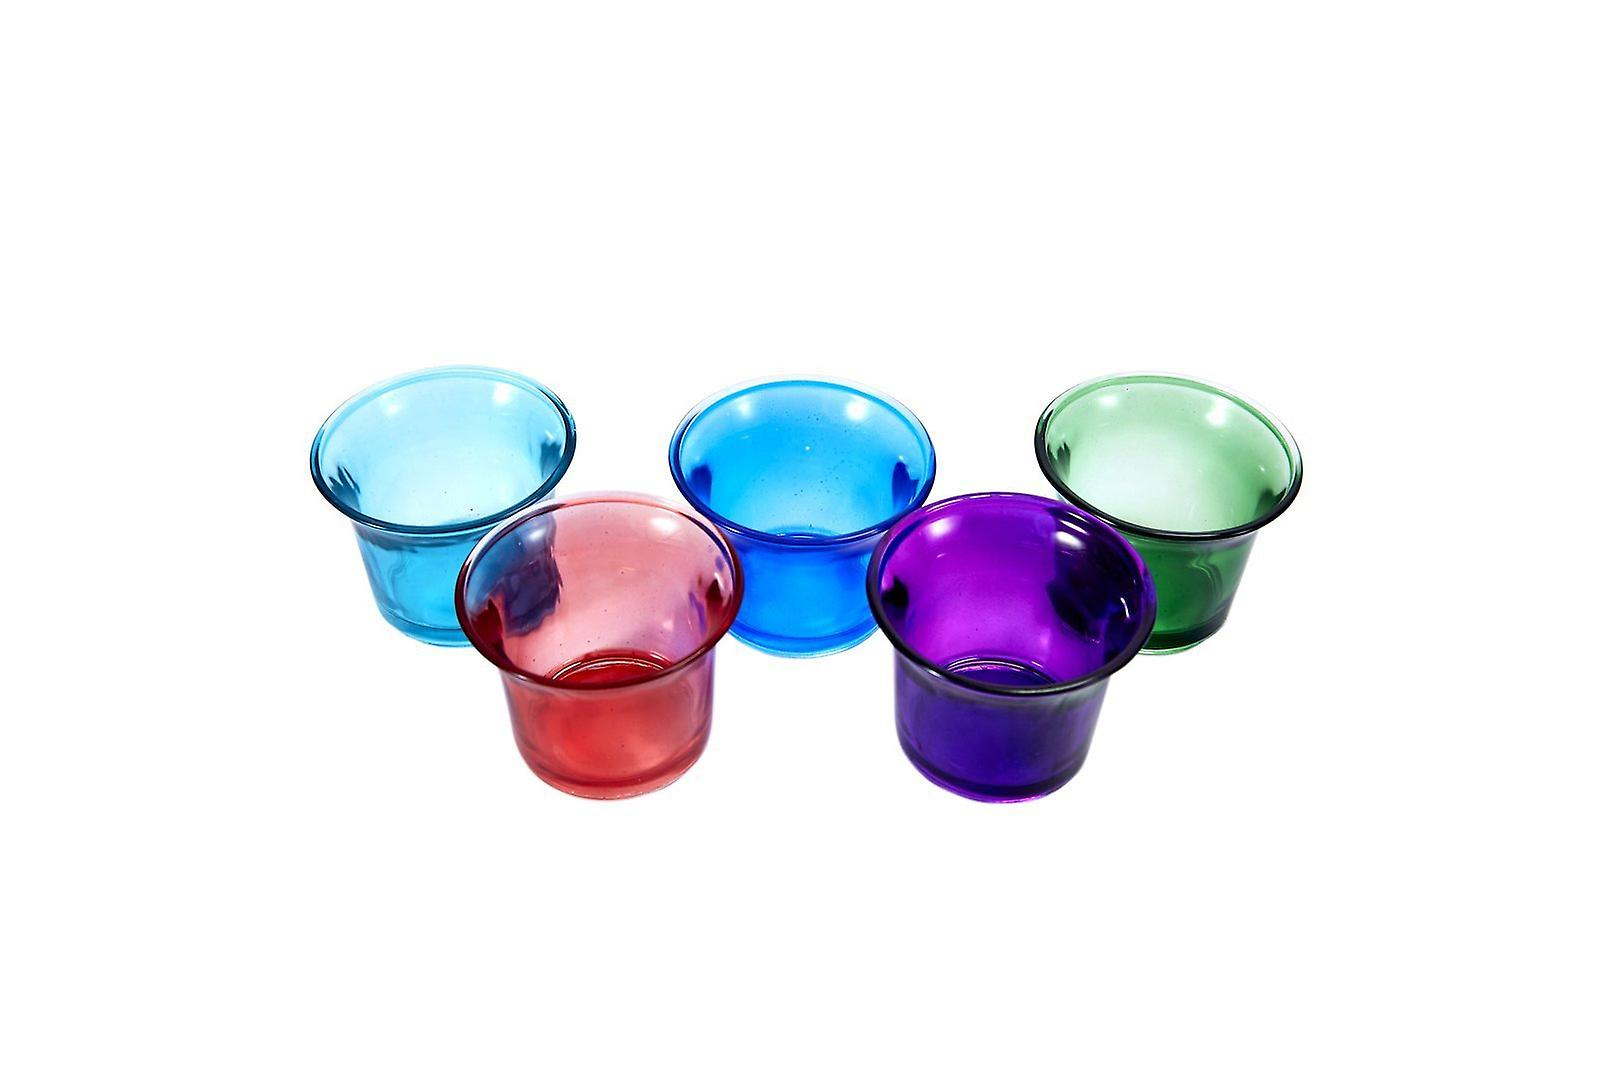 Pack of Replacement Votives for Tea Light Chandeliers